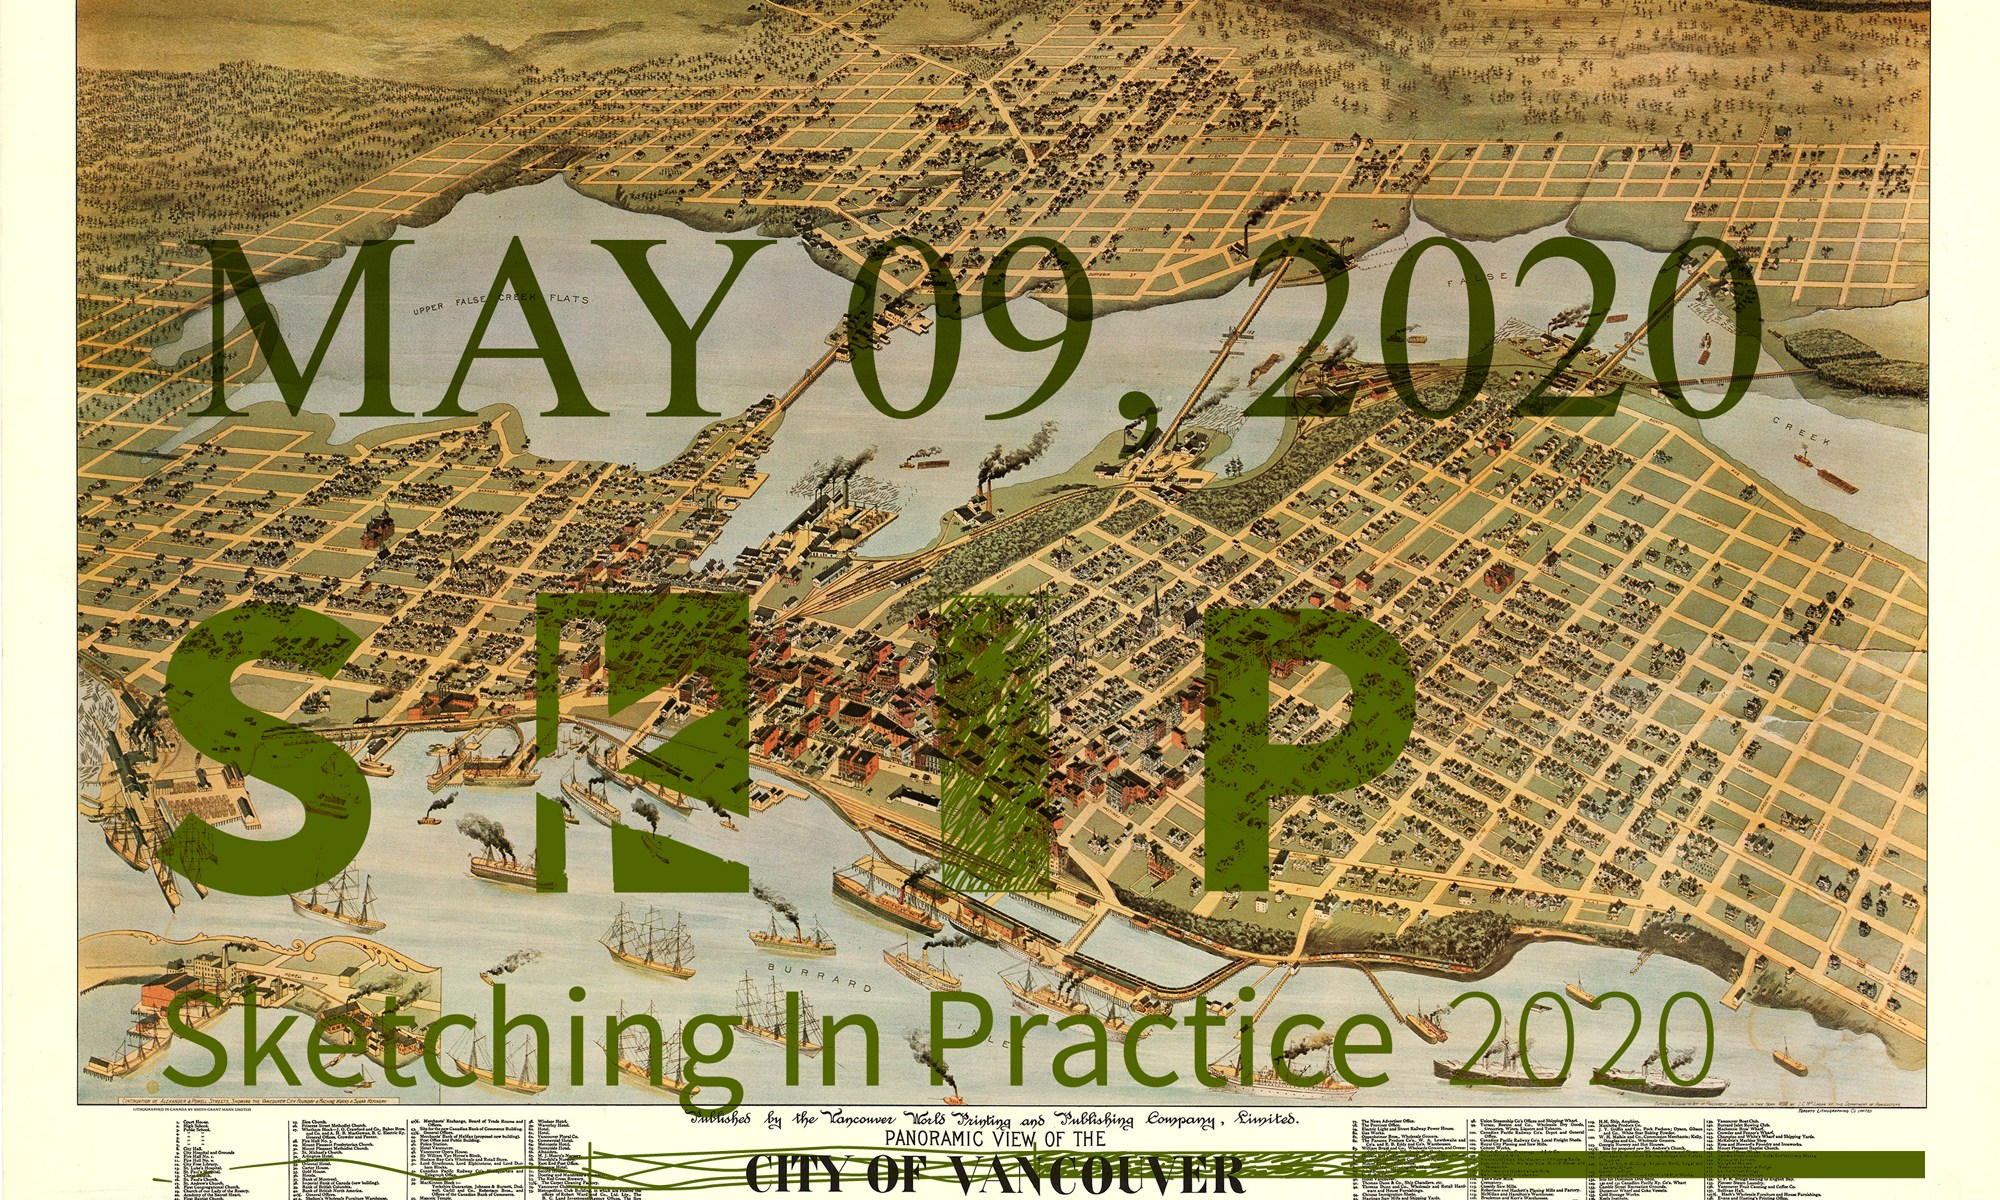 The date of the sketching in practice symposium is May 09 2020